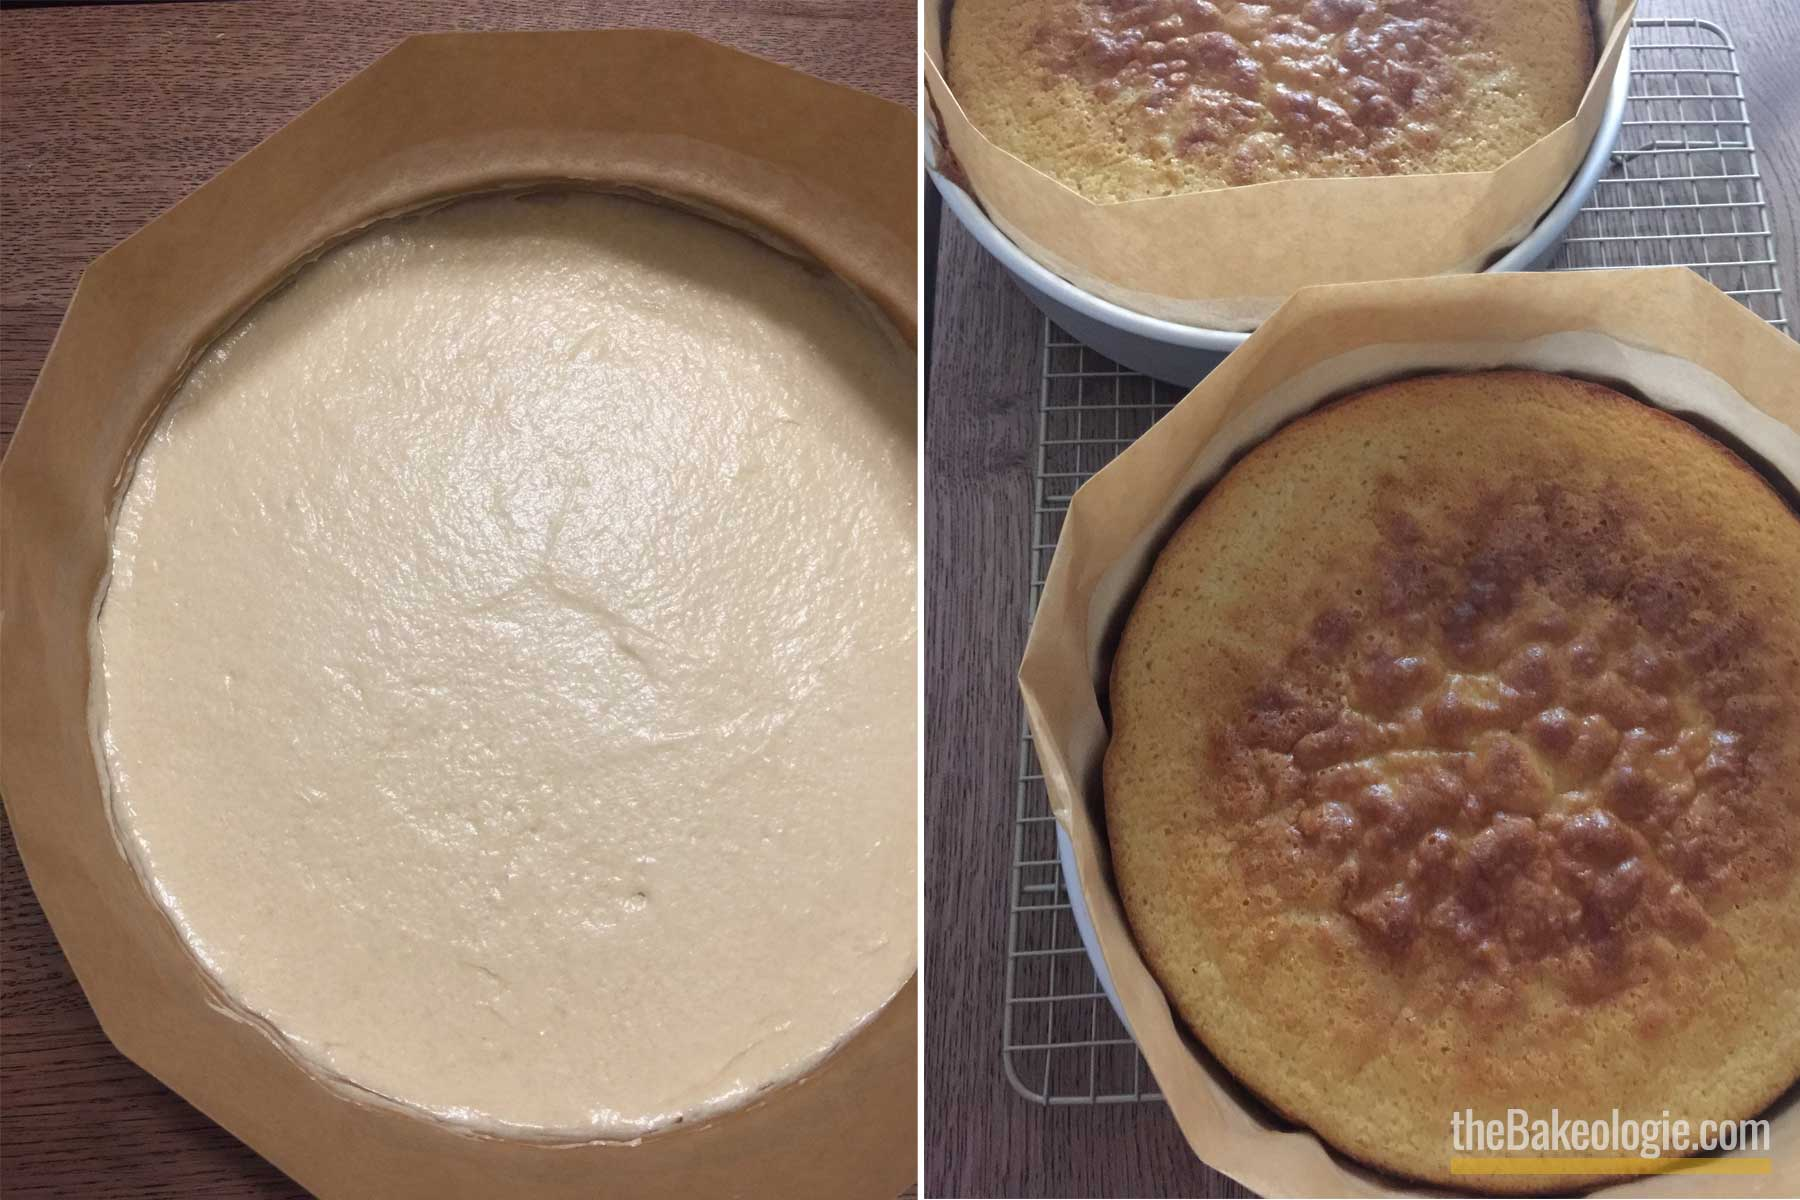 Vanilla Cake Batter in baking pan with parchment paper